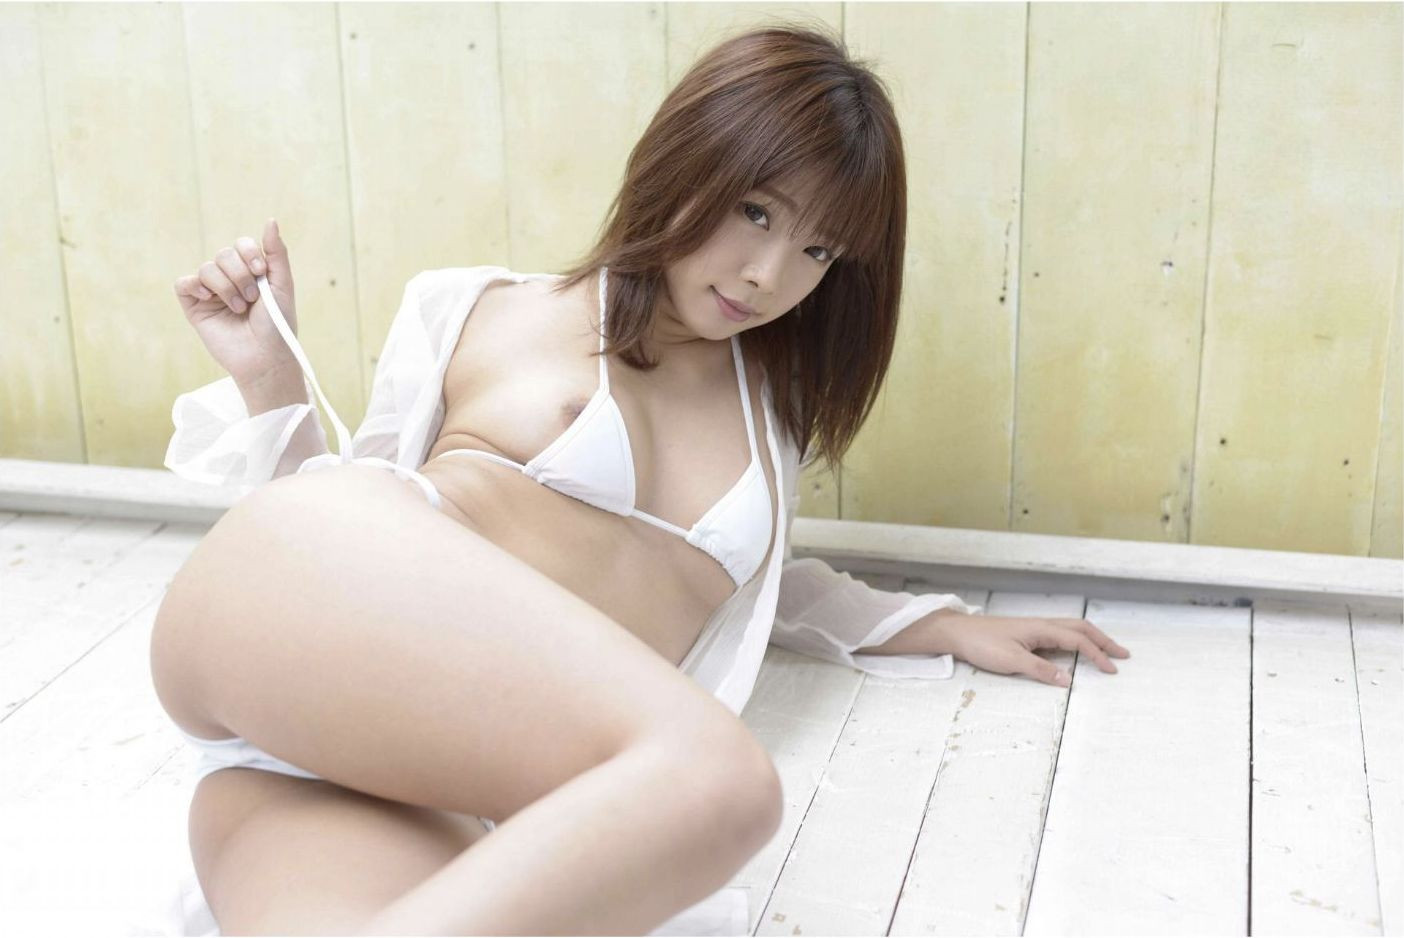 SOFT ON DEMAND GRAVURE COLLECTION 紗倉まな02 photo 039